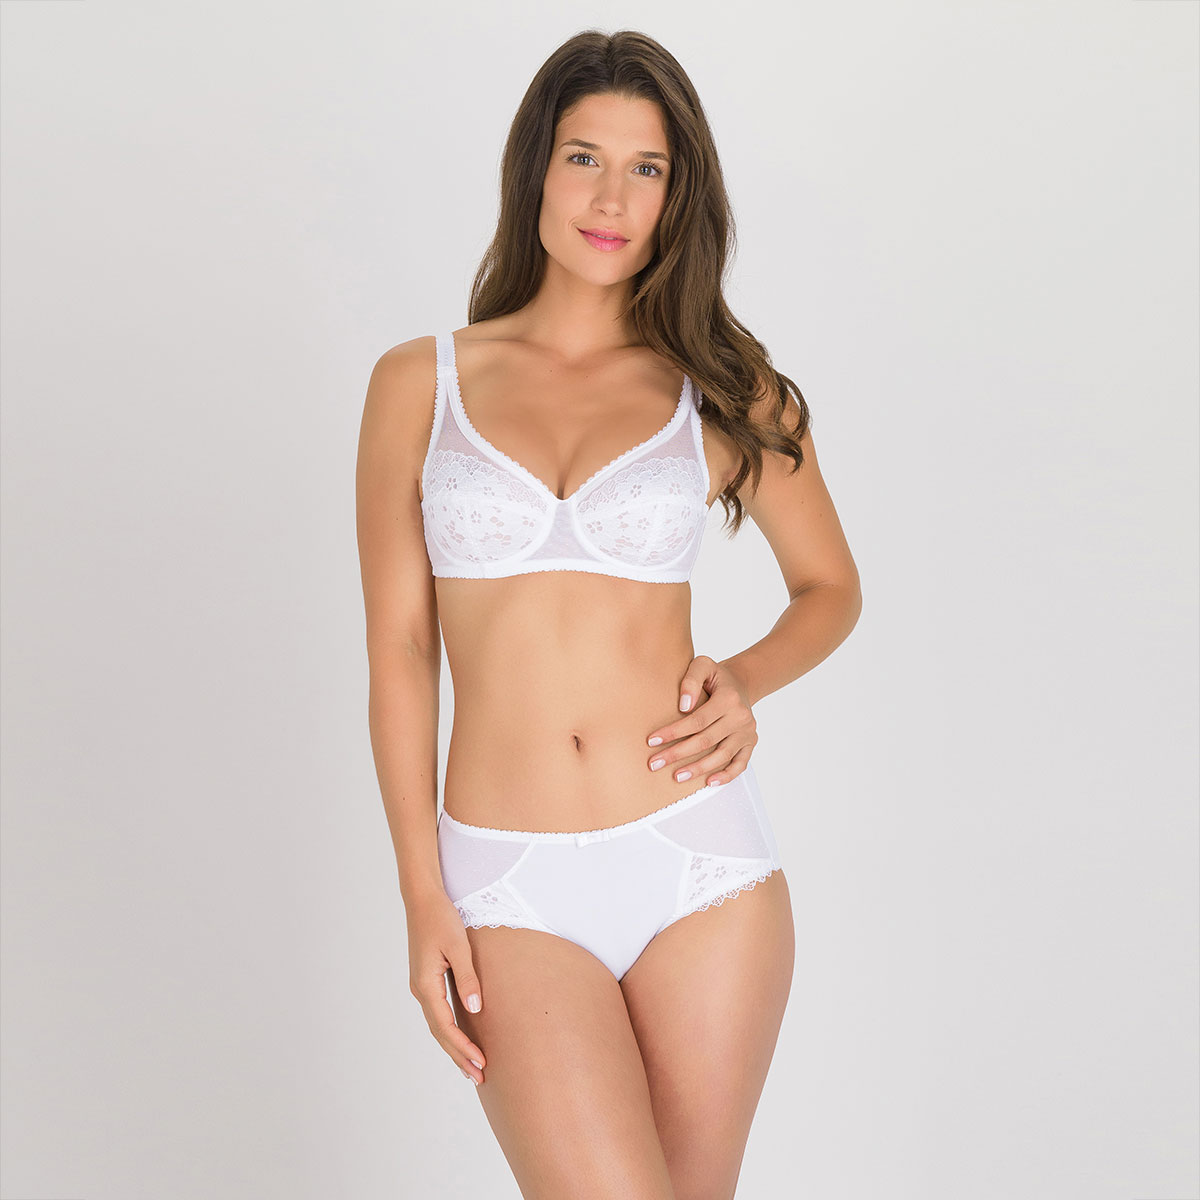 Full Cup Bra in White – Classic Lace Support-PLAYTEX